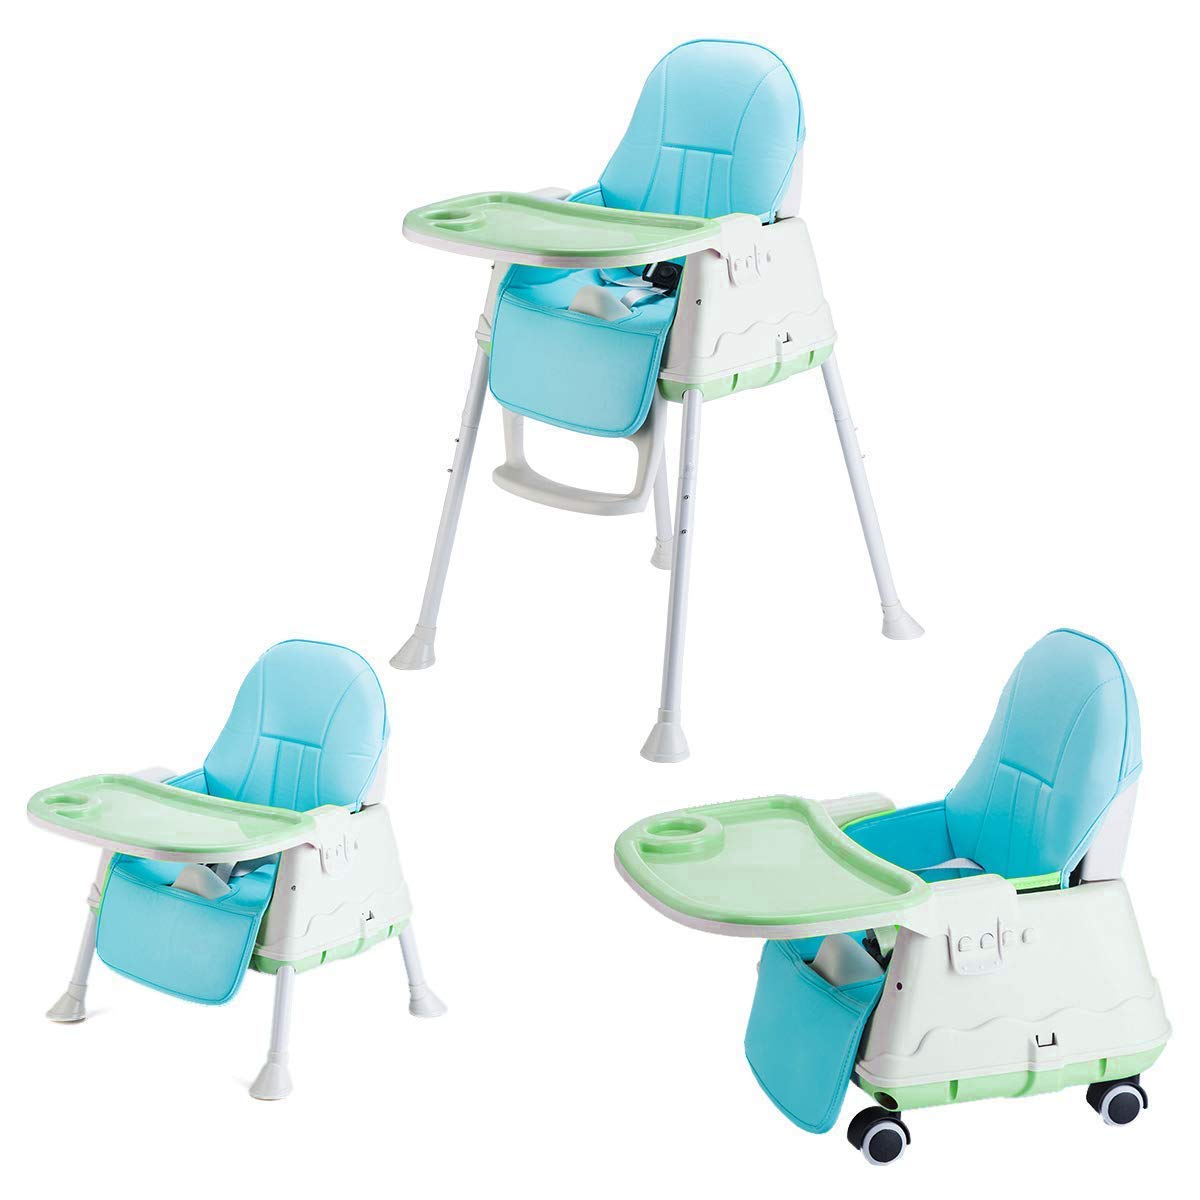 Buy Syga High Chair For Baby Kids Safety Toddler Feeding Booster Seat Dining Table Chair With Wheel And Cushion Green Online At Low Prices In India Amazon In